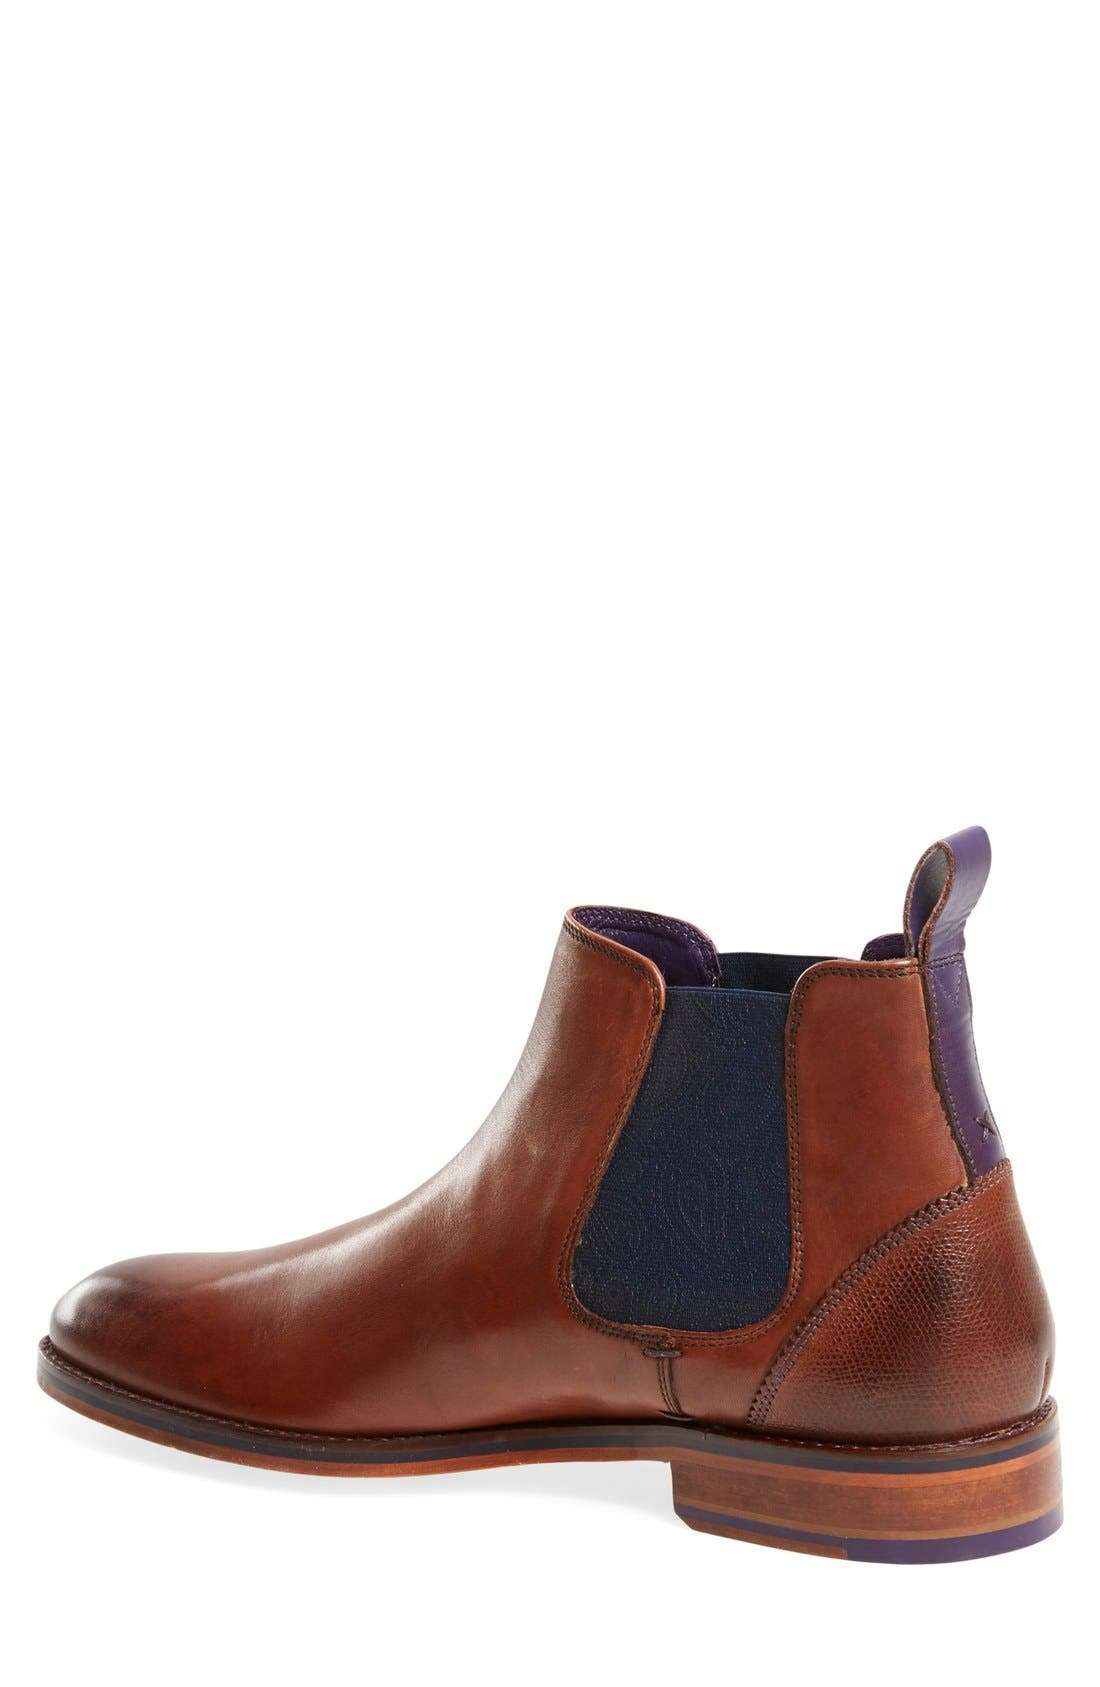 Alternate Image 2  - Ted Baker London 'Camroon 4' Chelsea Boot (Men)